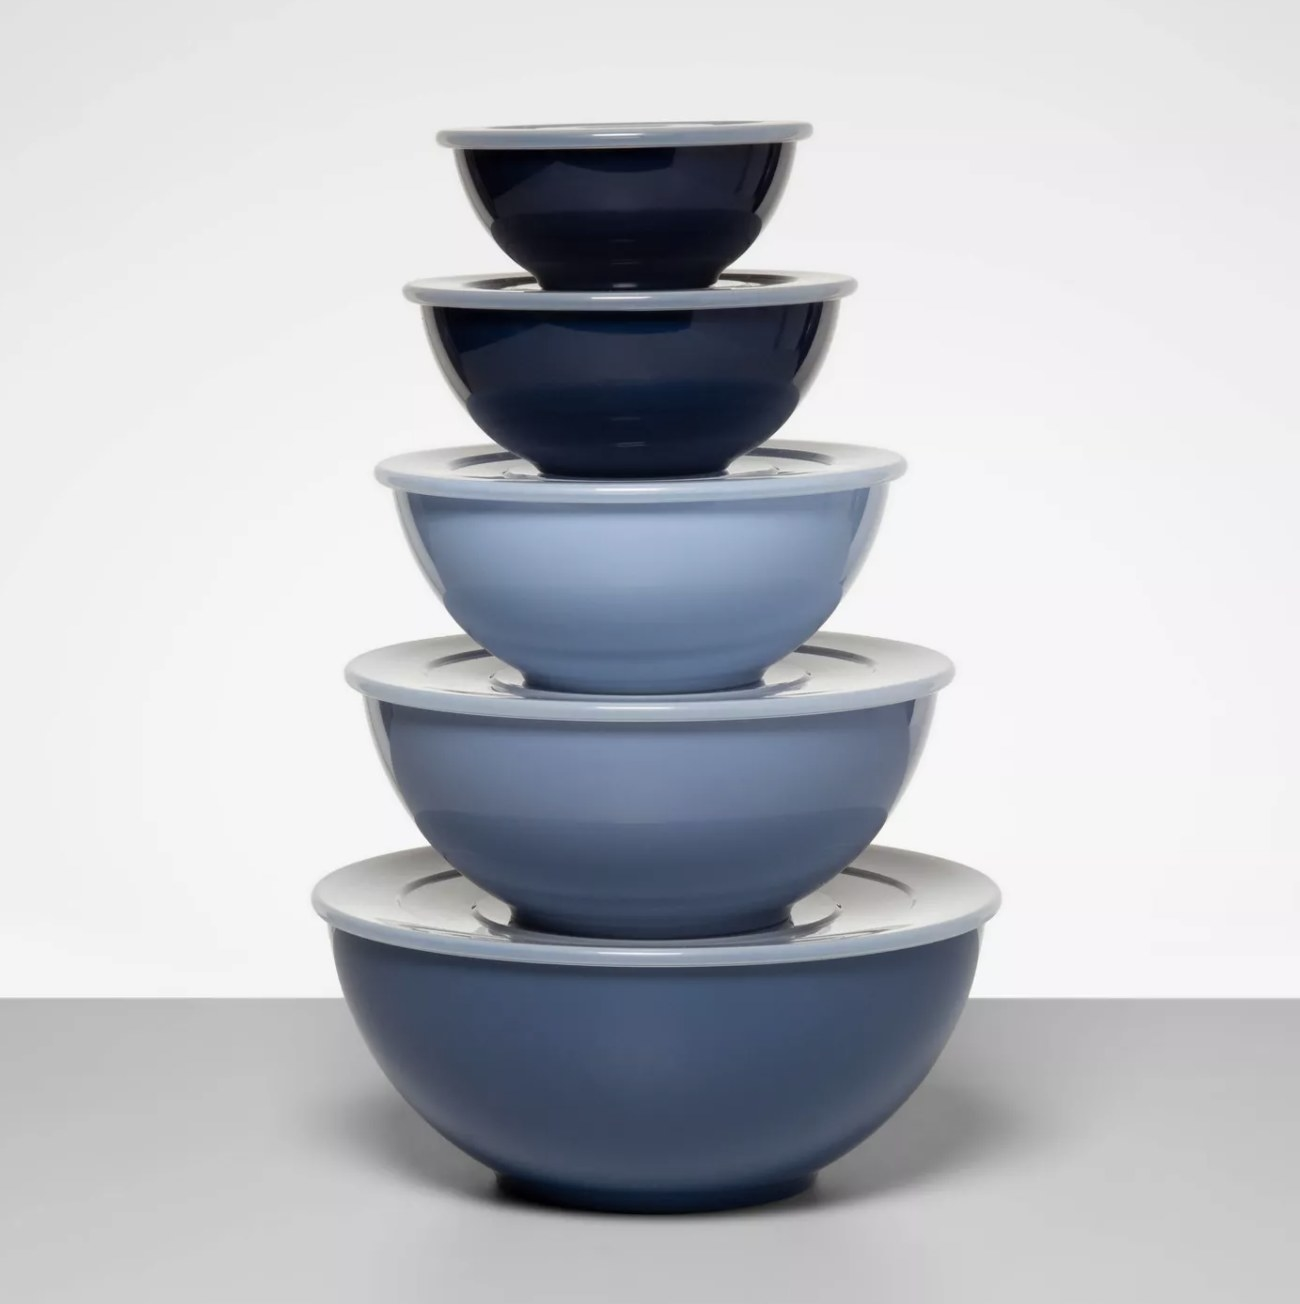 The mixing bowls